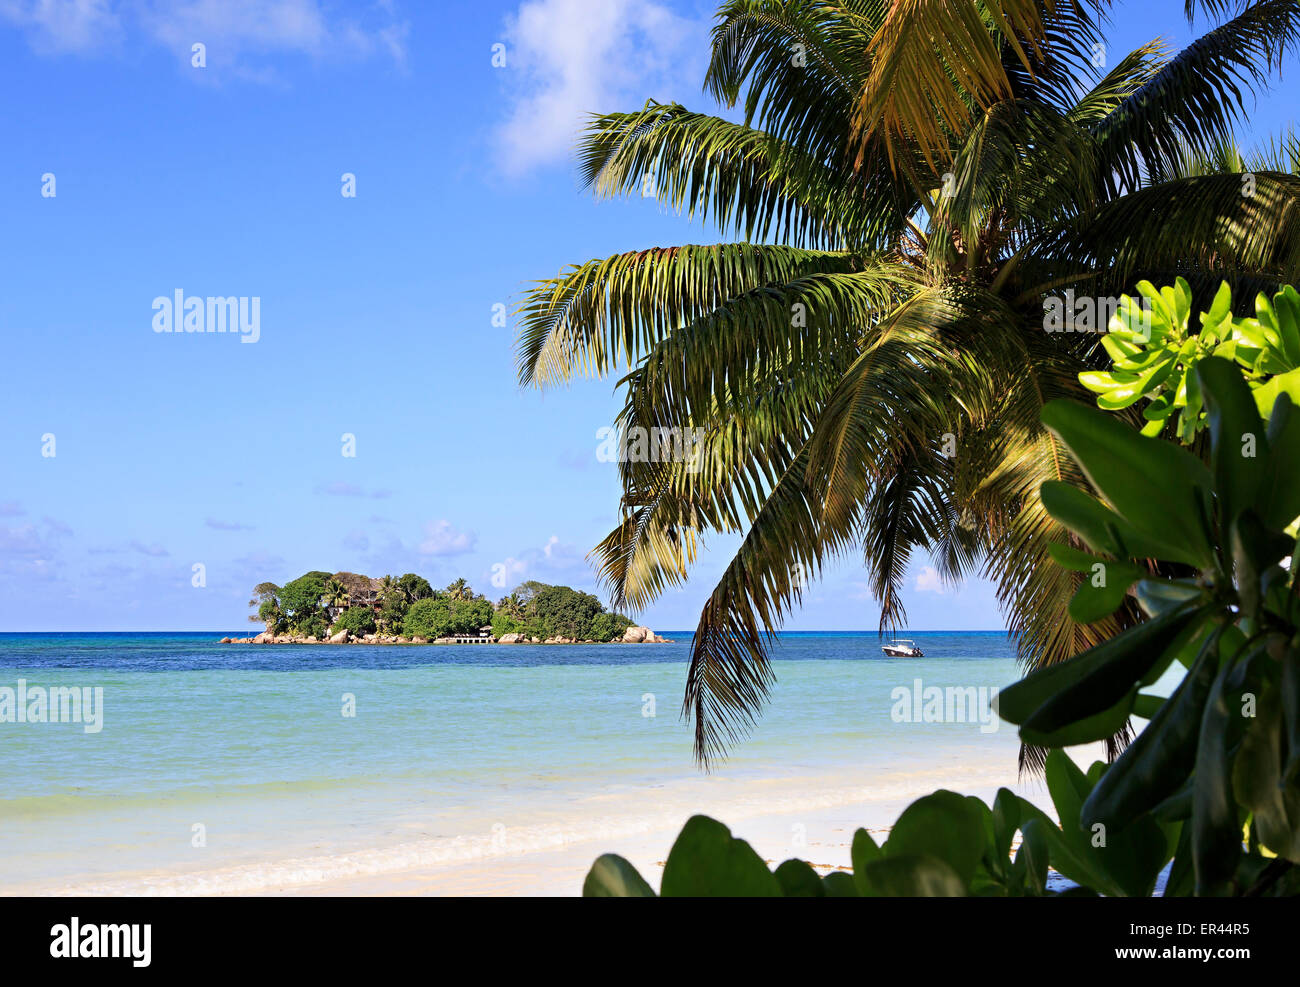 Island Chauve Souris in the Indian Ocean Stock Photo